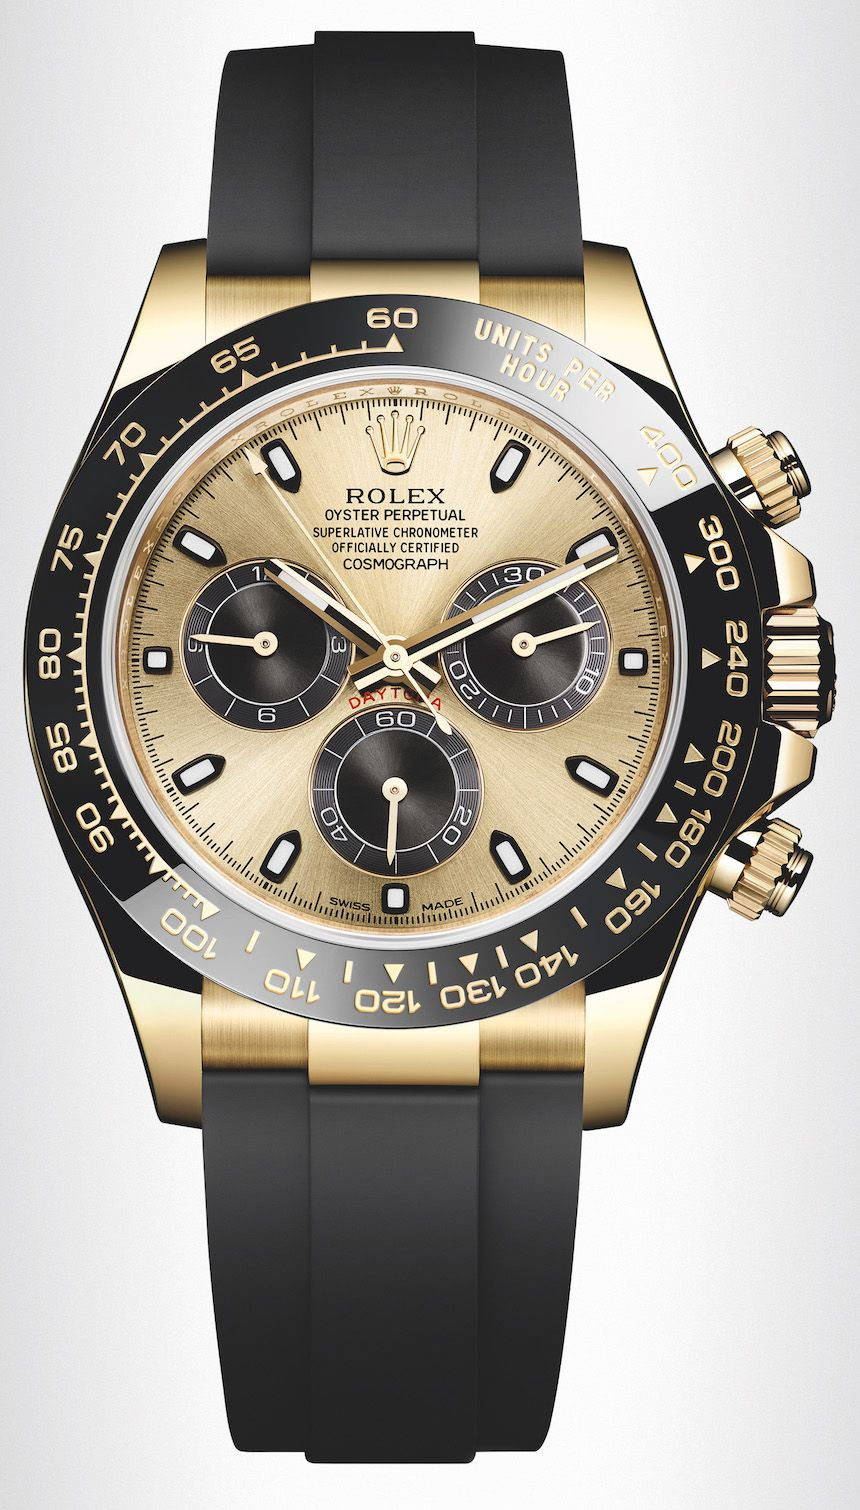 613af84b40e New Rolex Cosmograph Daytona Watches In Gold With Oysterflex Rubber Strap  and Ceramic Bezel For 2017